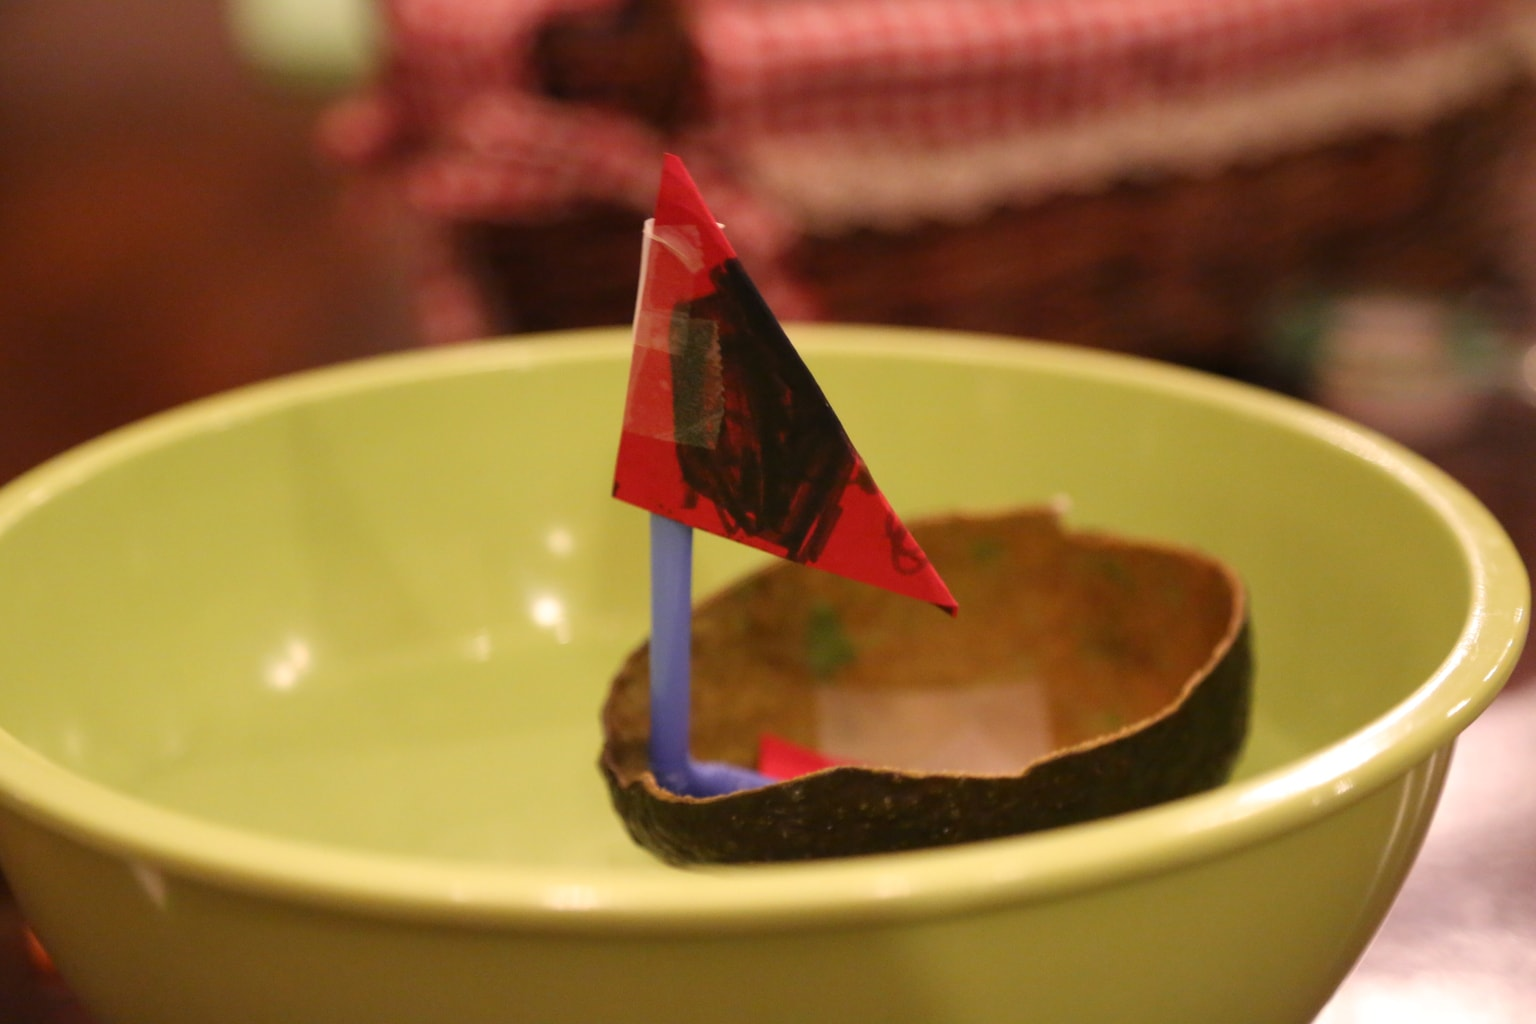 little boat made of avocado peel floating in bowl full of water